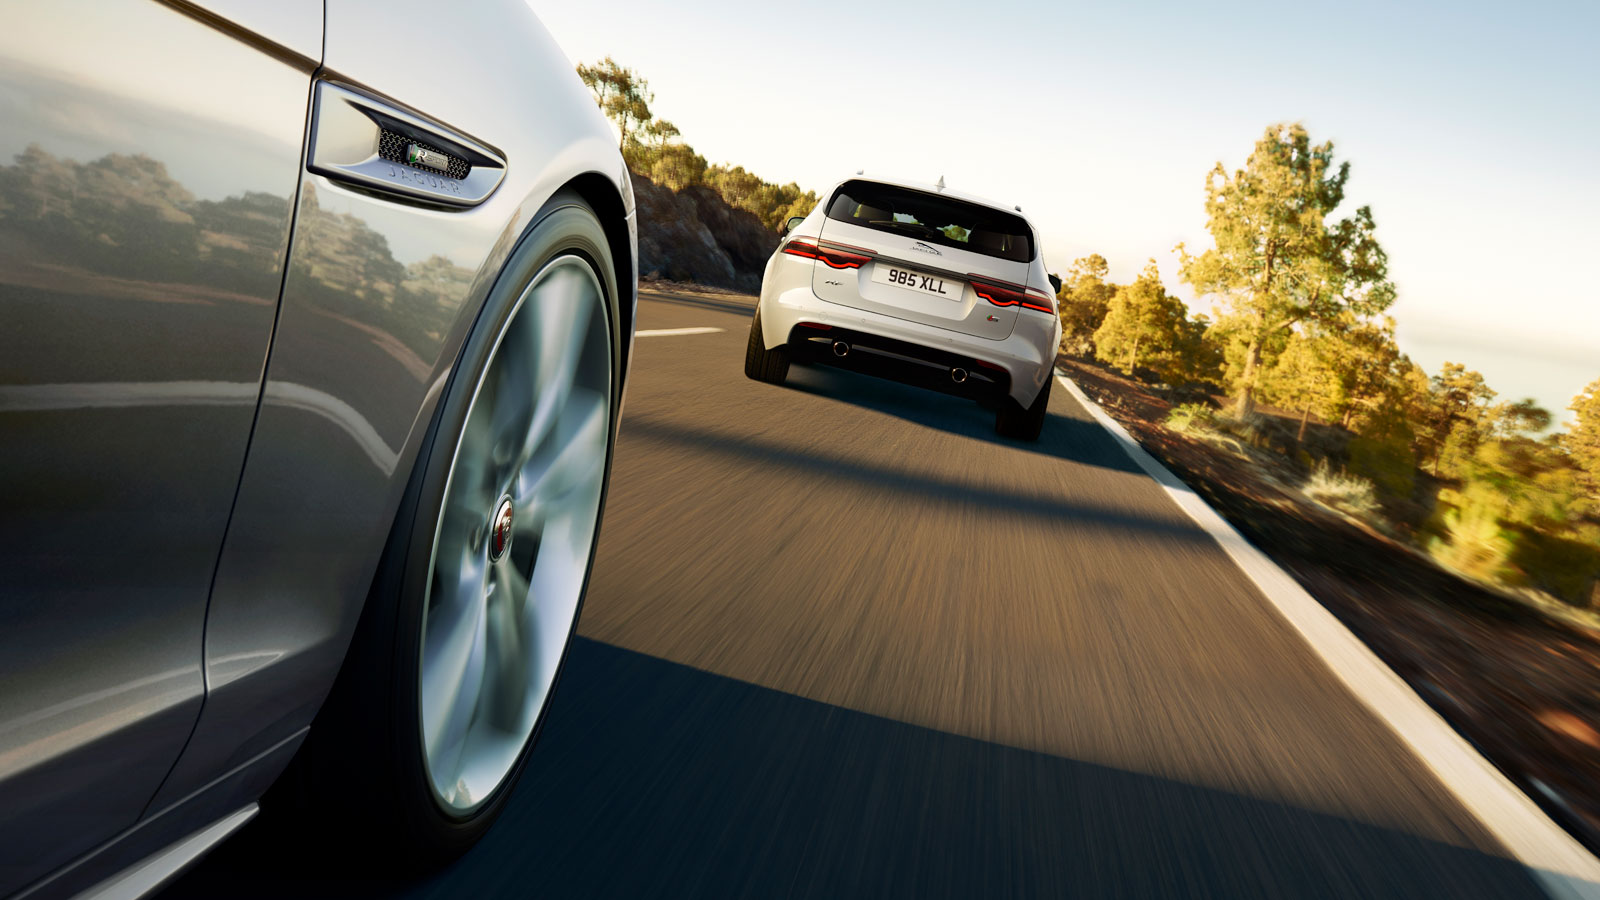 Jaguar XF Driving On Road